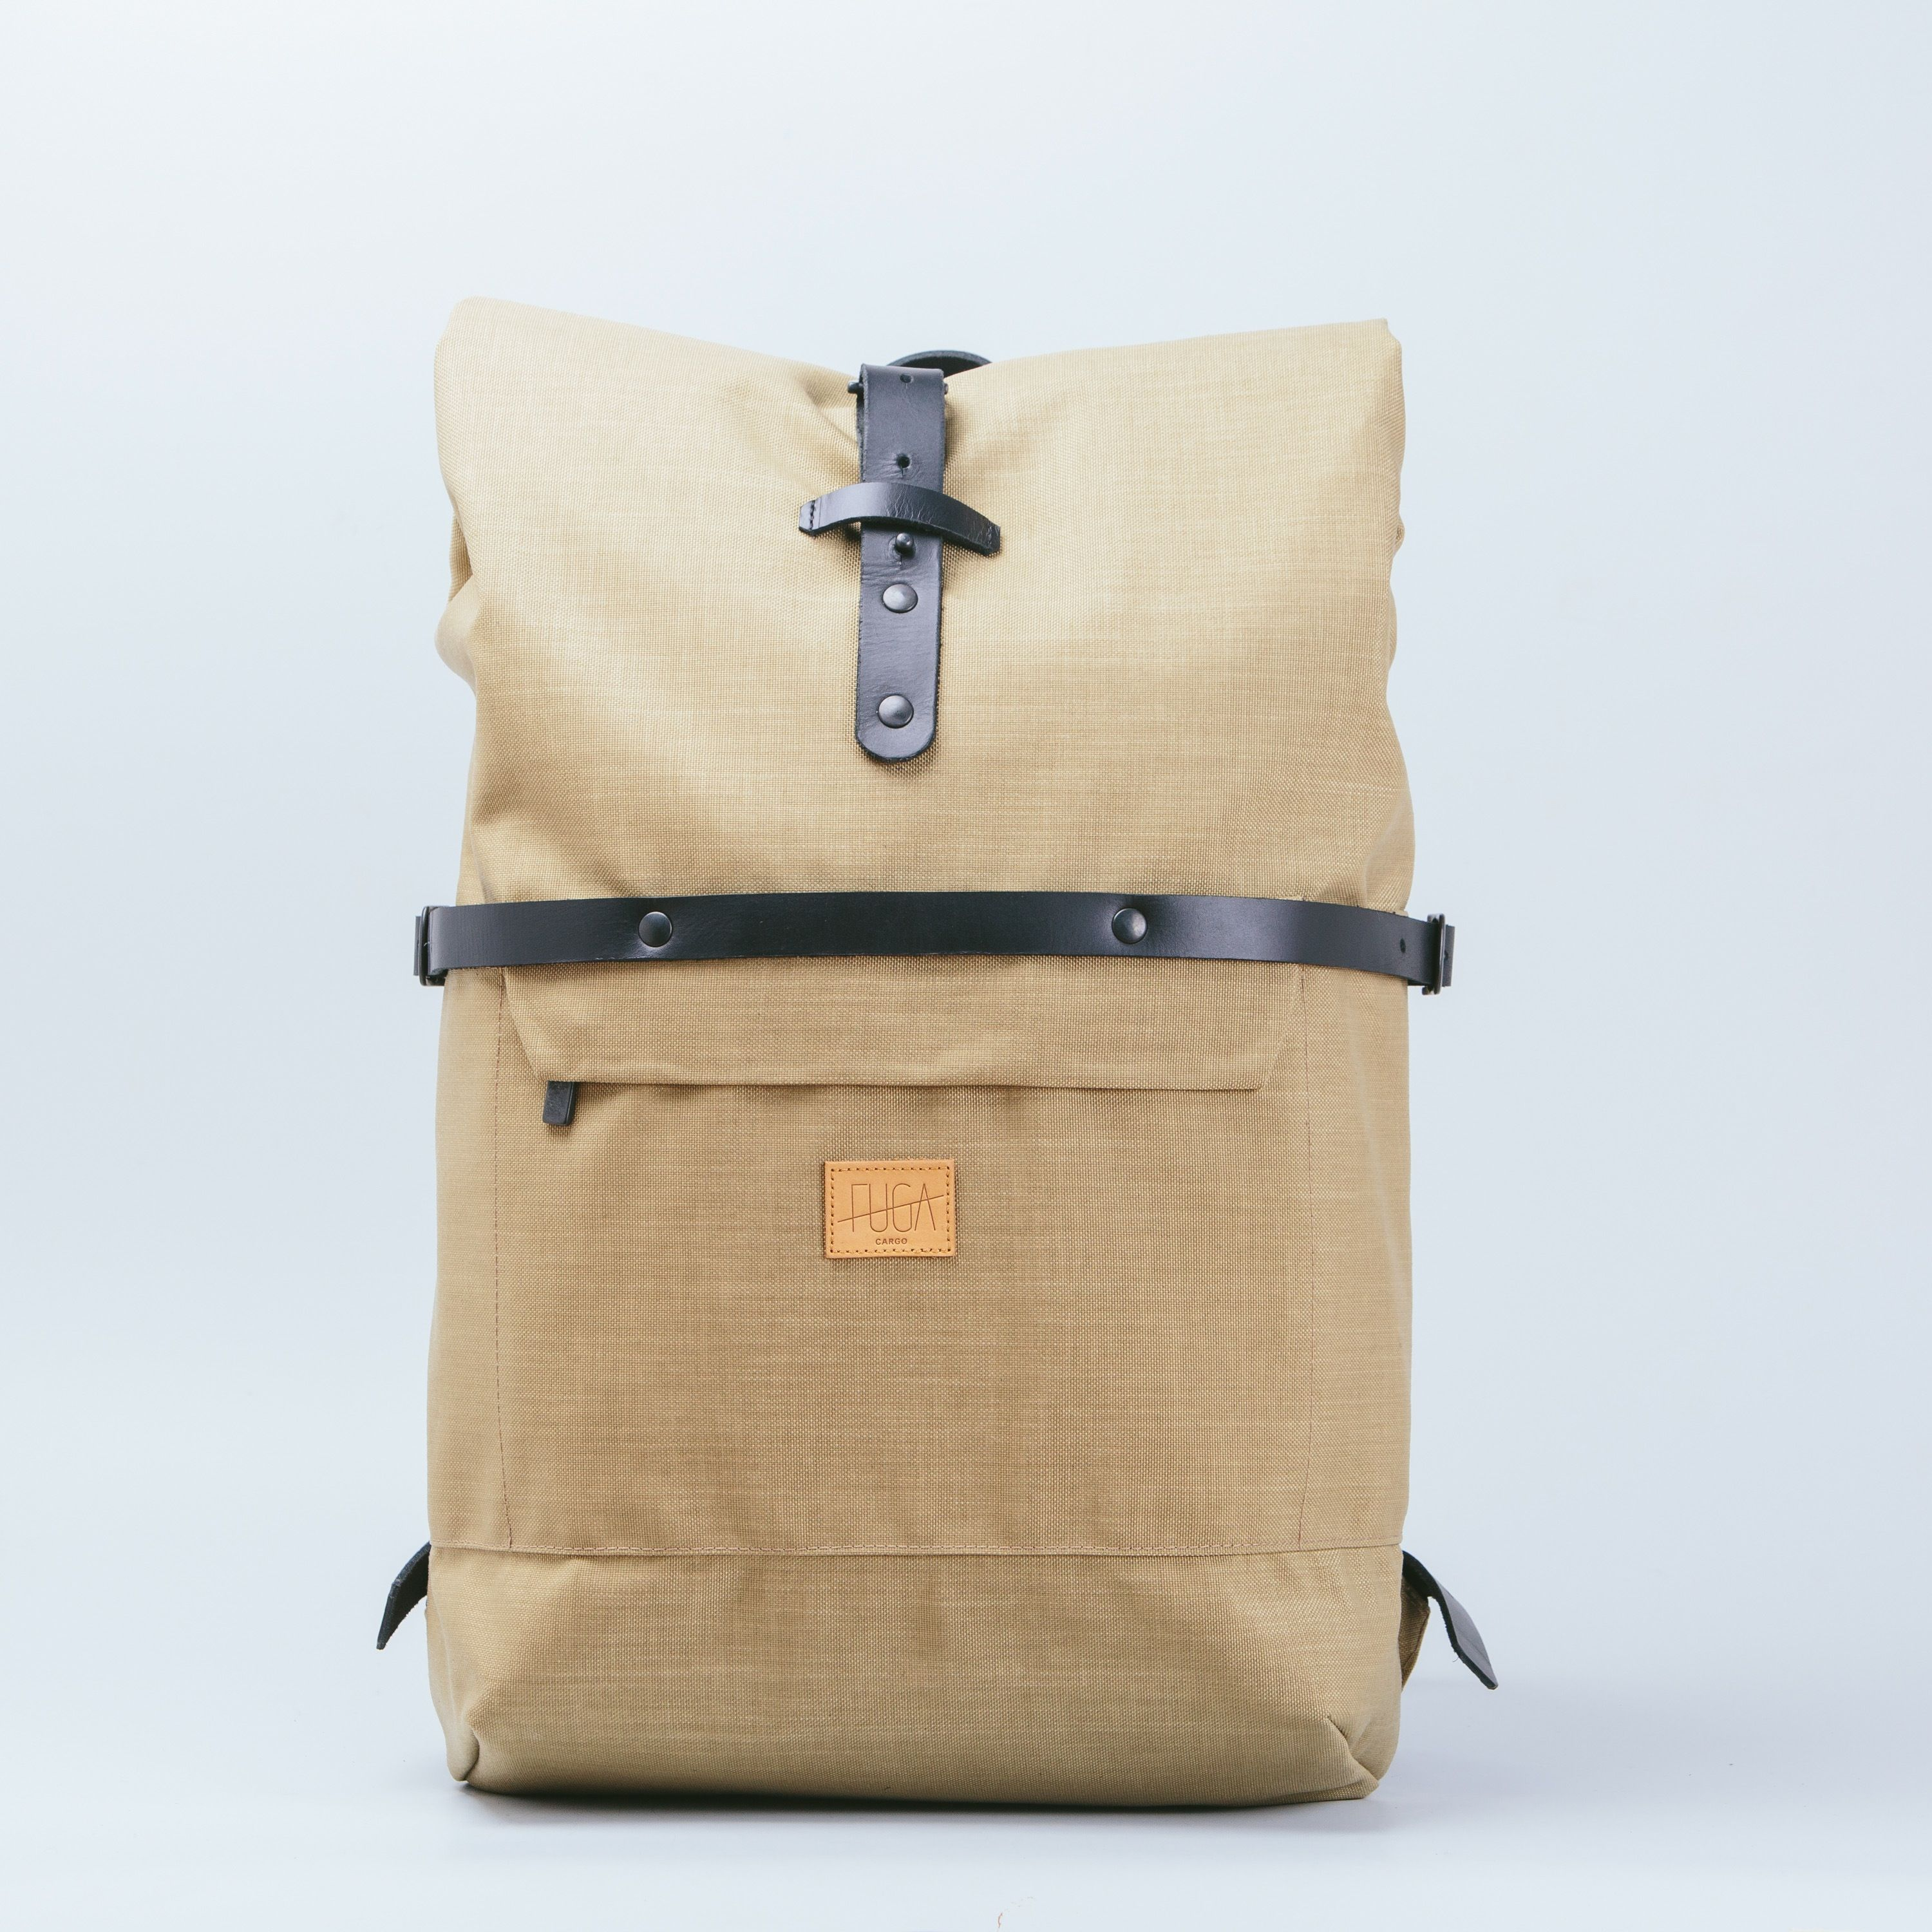 Alldaypack. Cycling rolltop backpack 0ce402fd59702